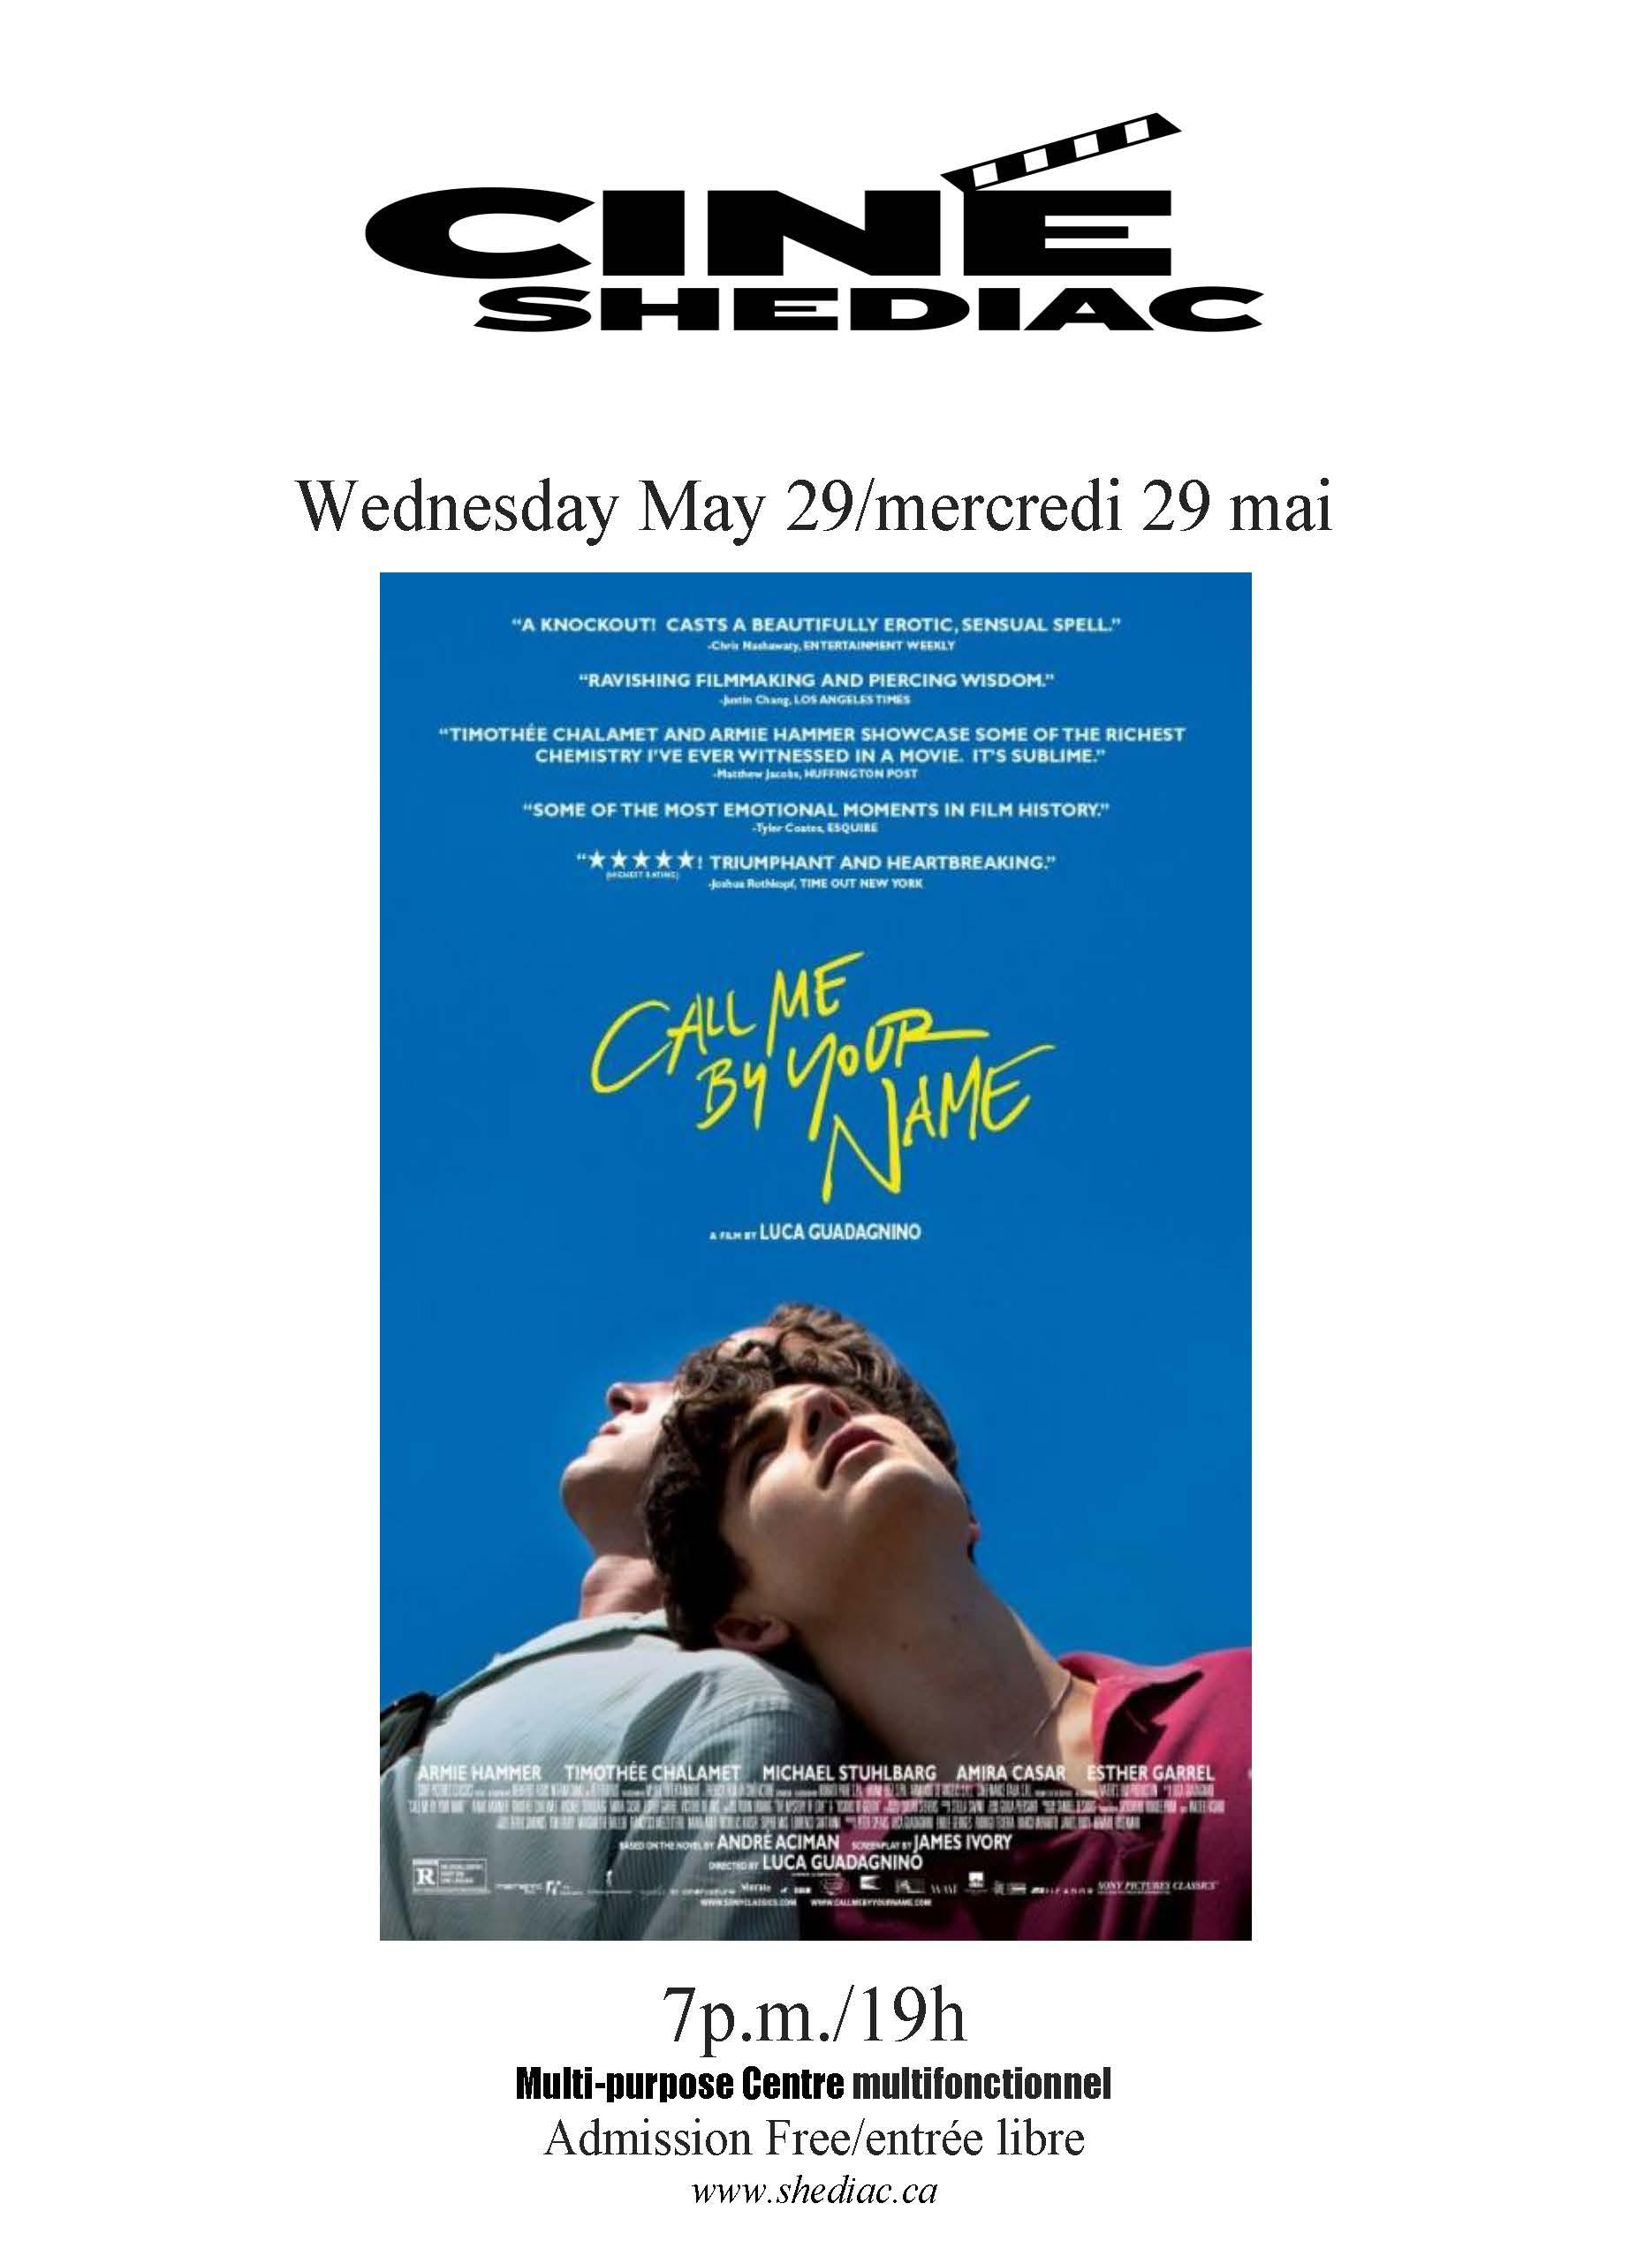 Call me by your name 29 mai